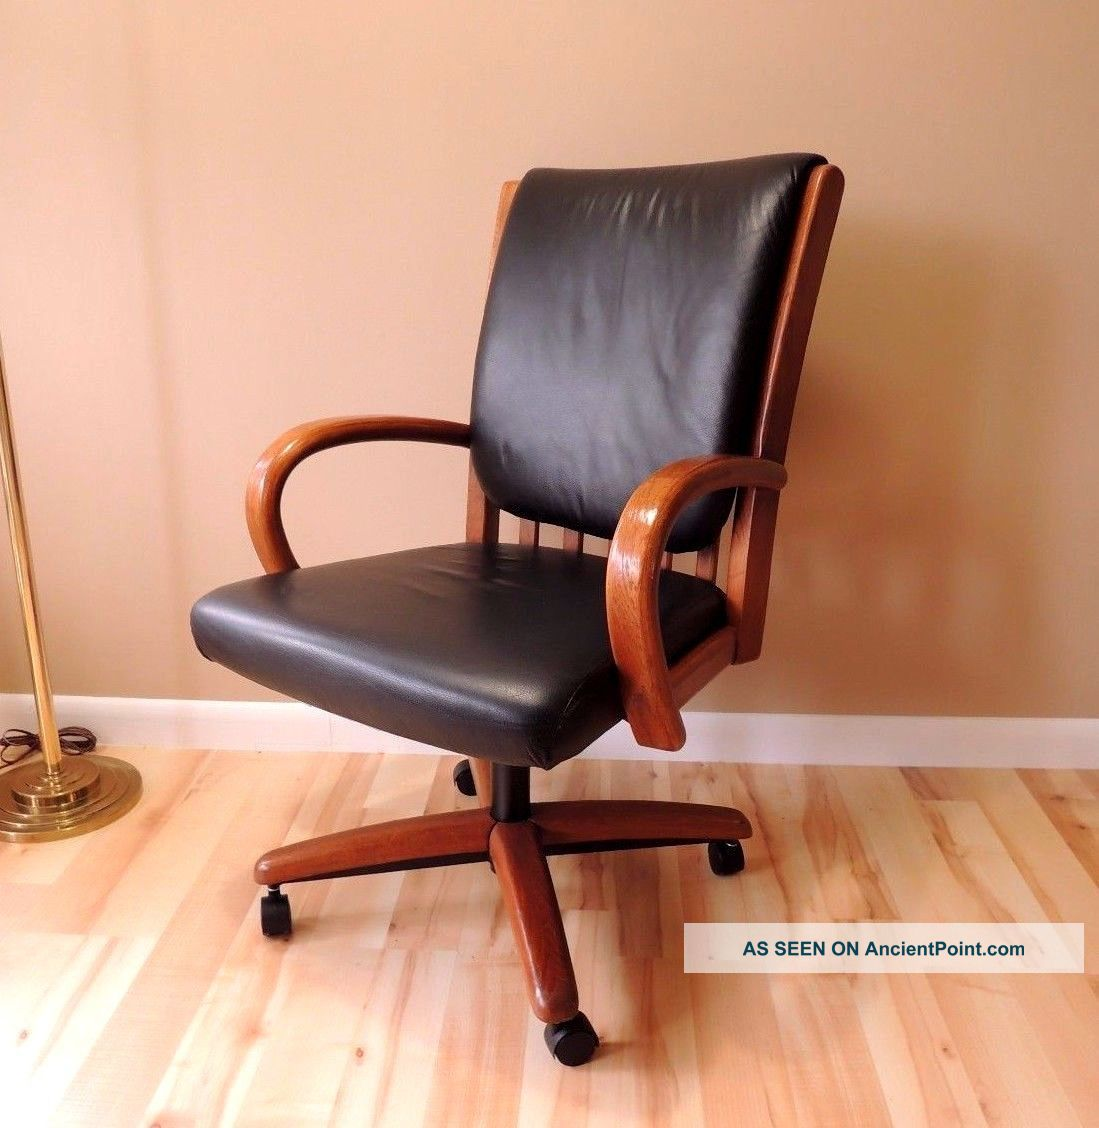 Office Chair CastersLovely With Neck Support Contrabanda Steelcase Chairs